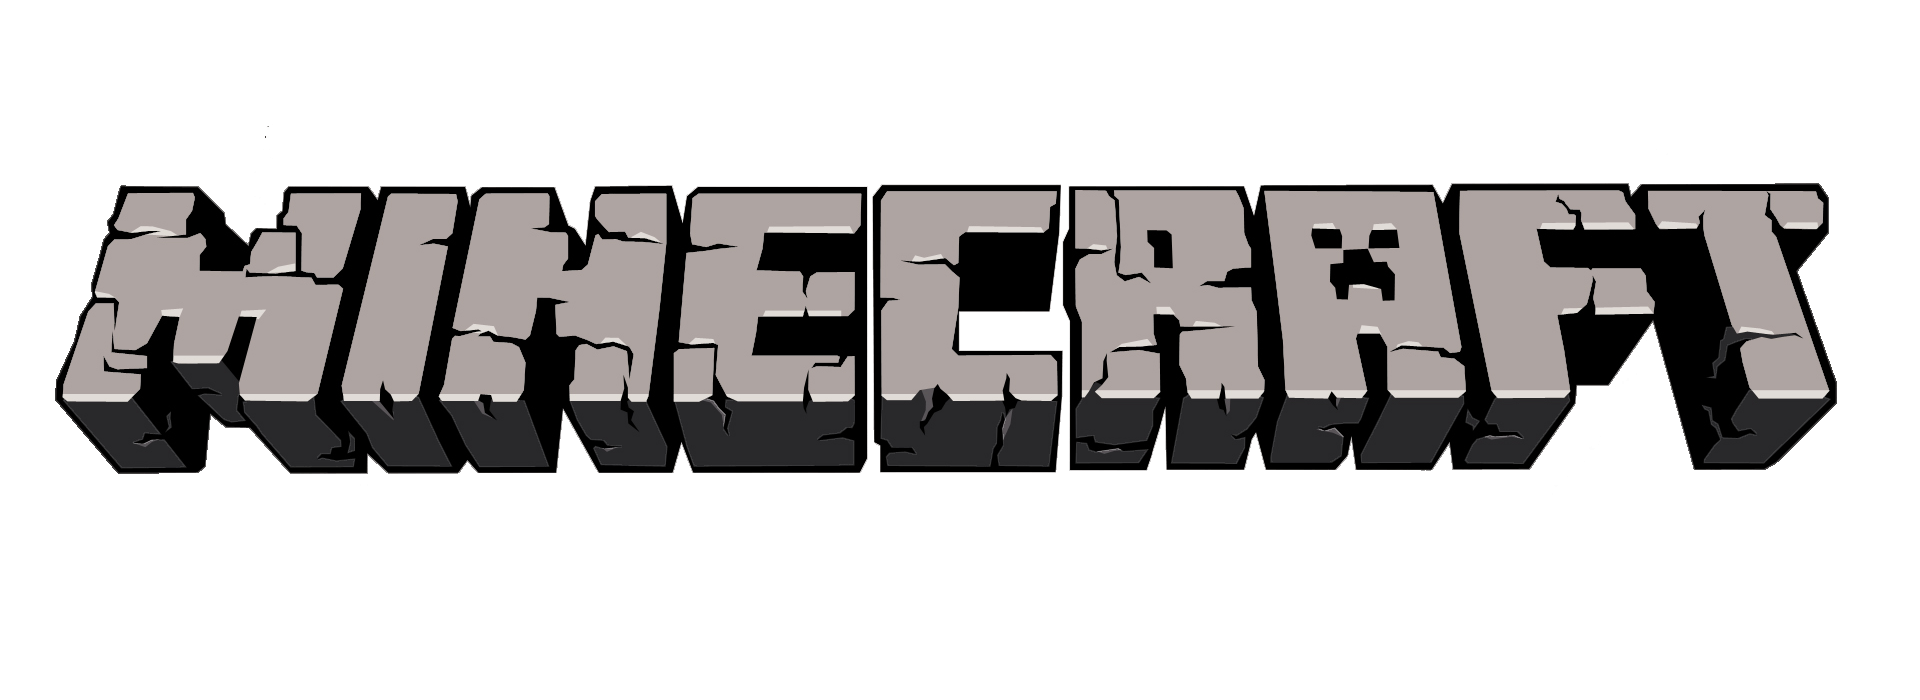 Minecraft logo transparent background ut05tirq.